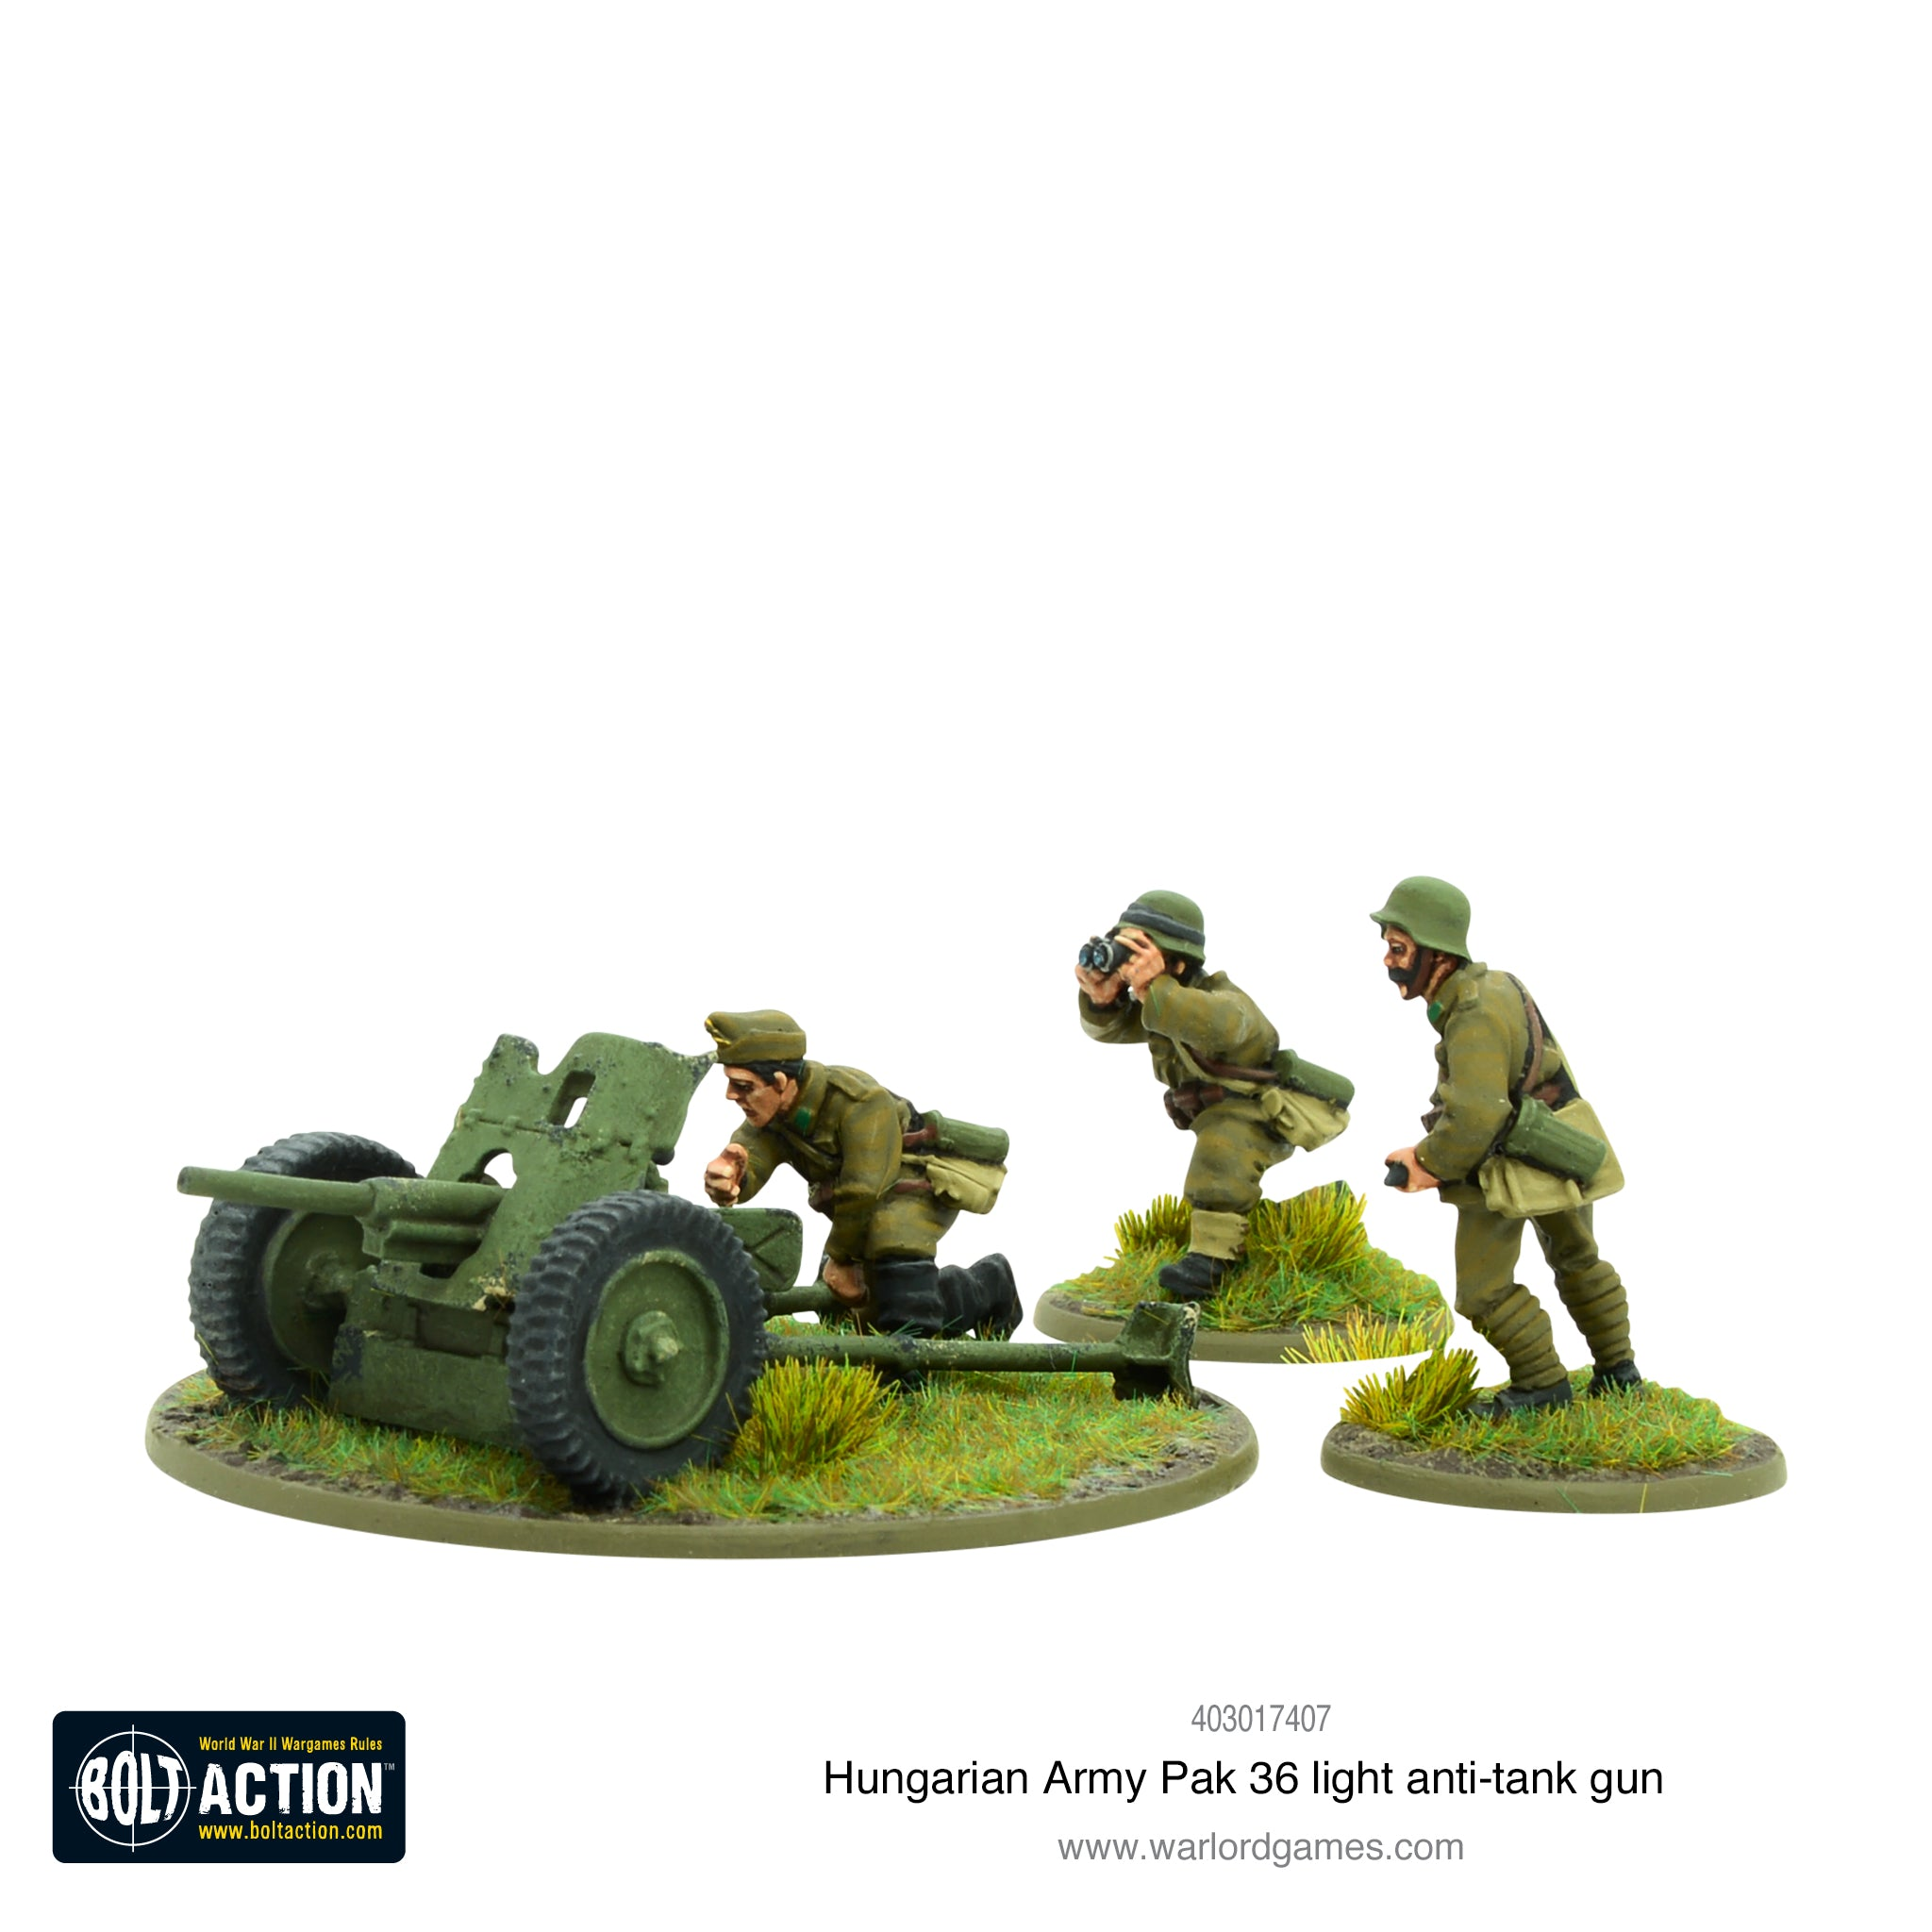 Hungarian Army Pak 36 light anti-tank gun